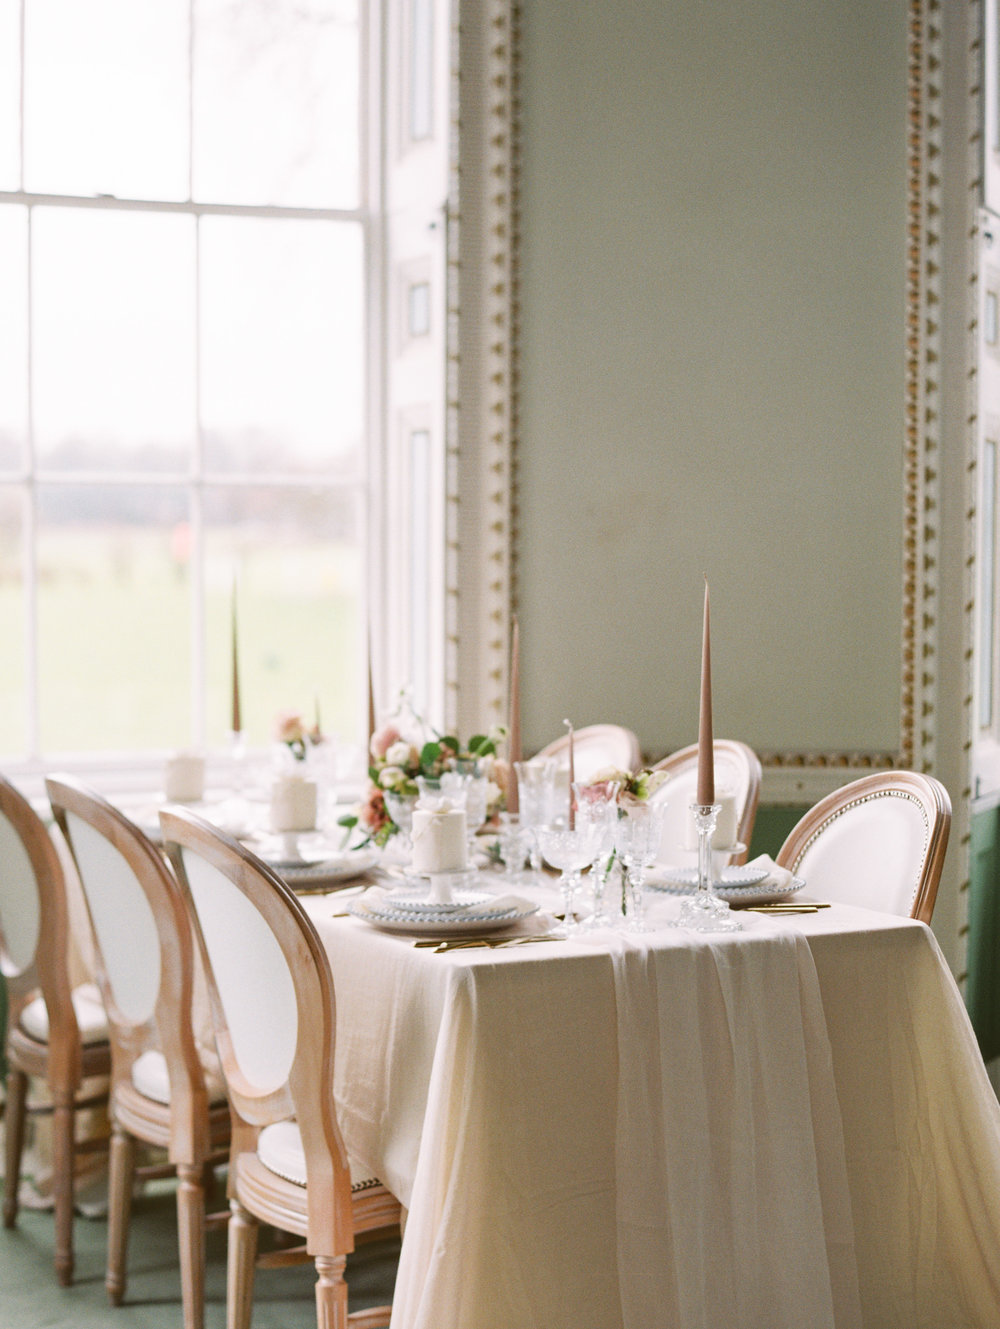 The Timeless Stylist-Elegant and Romantic Wedding Styling-Soft and Gentle Wedding Tablescape